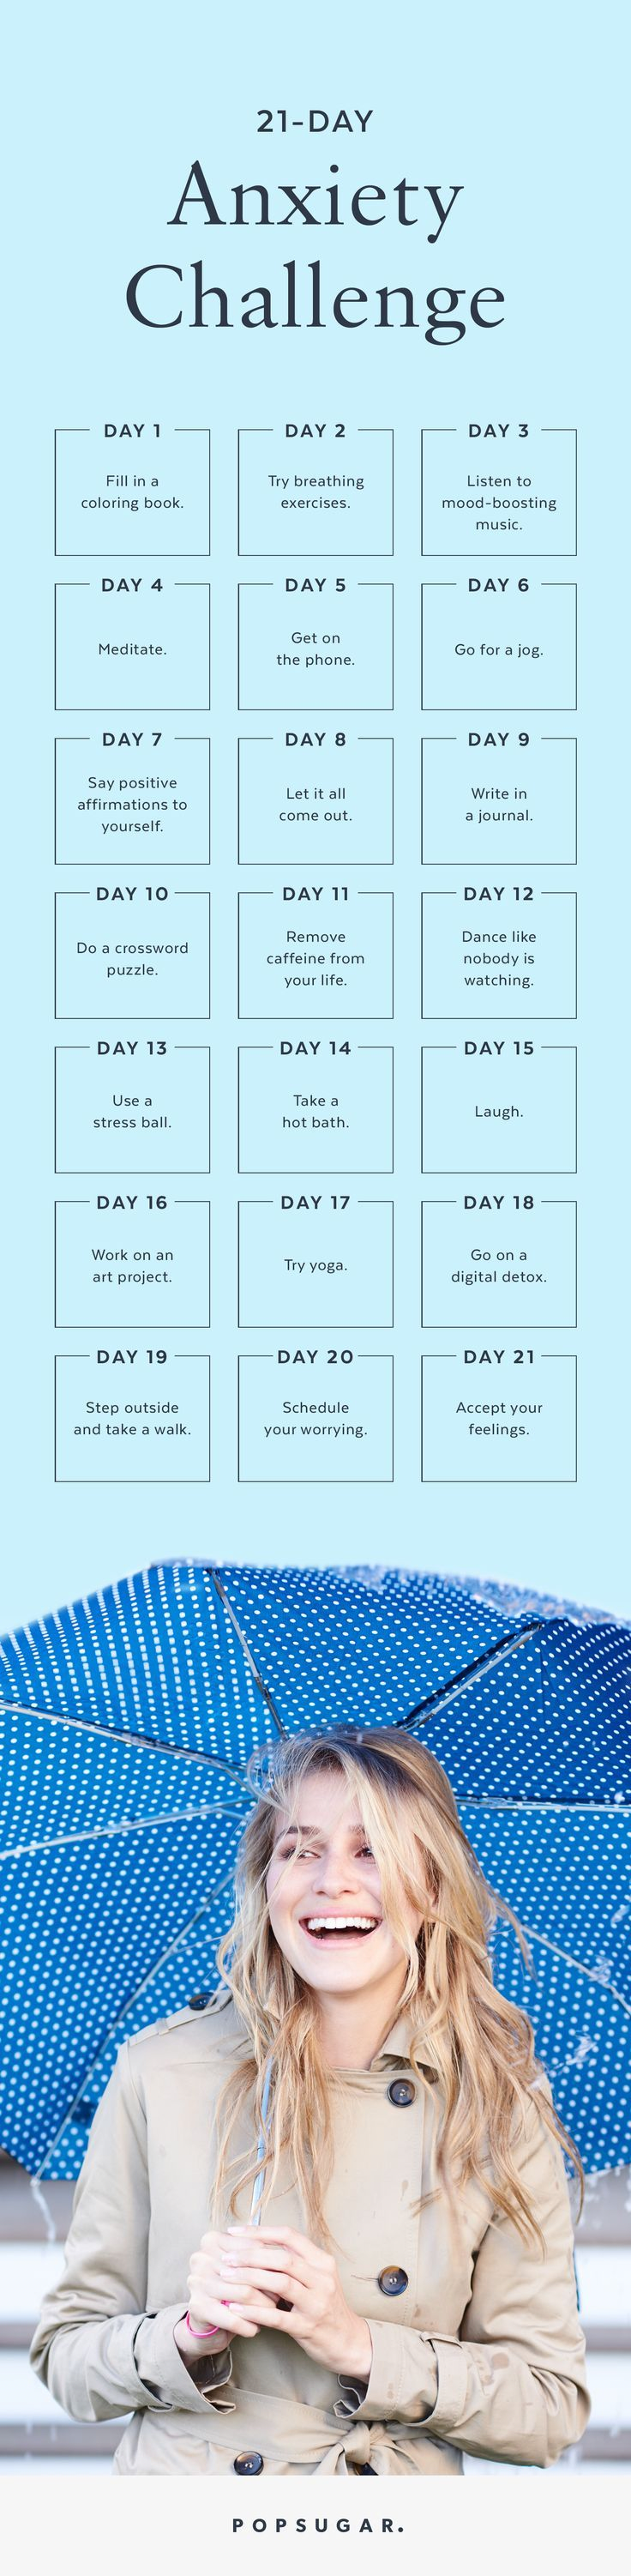 Feeling stressed? It may be time to take our 21-day anxiety challenge.